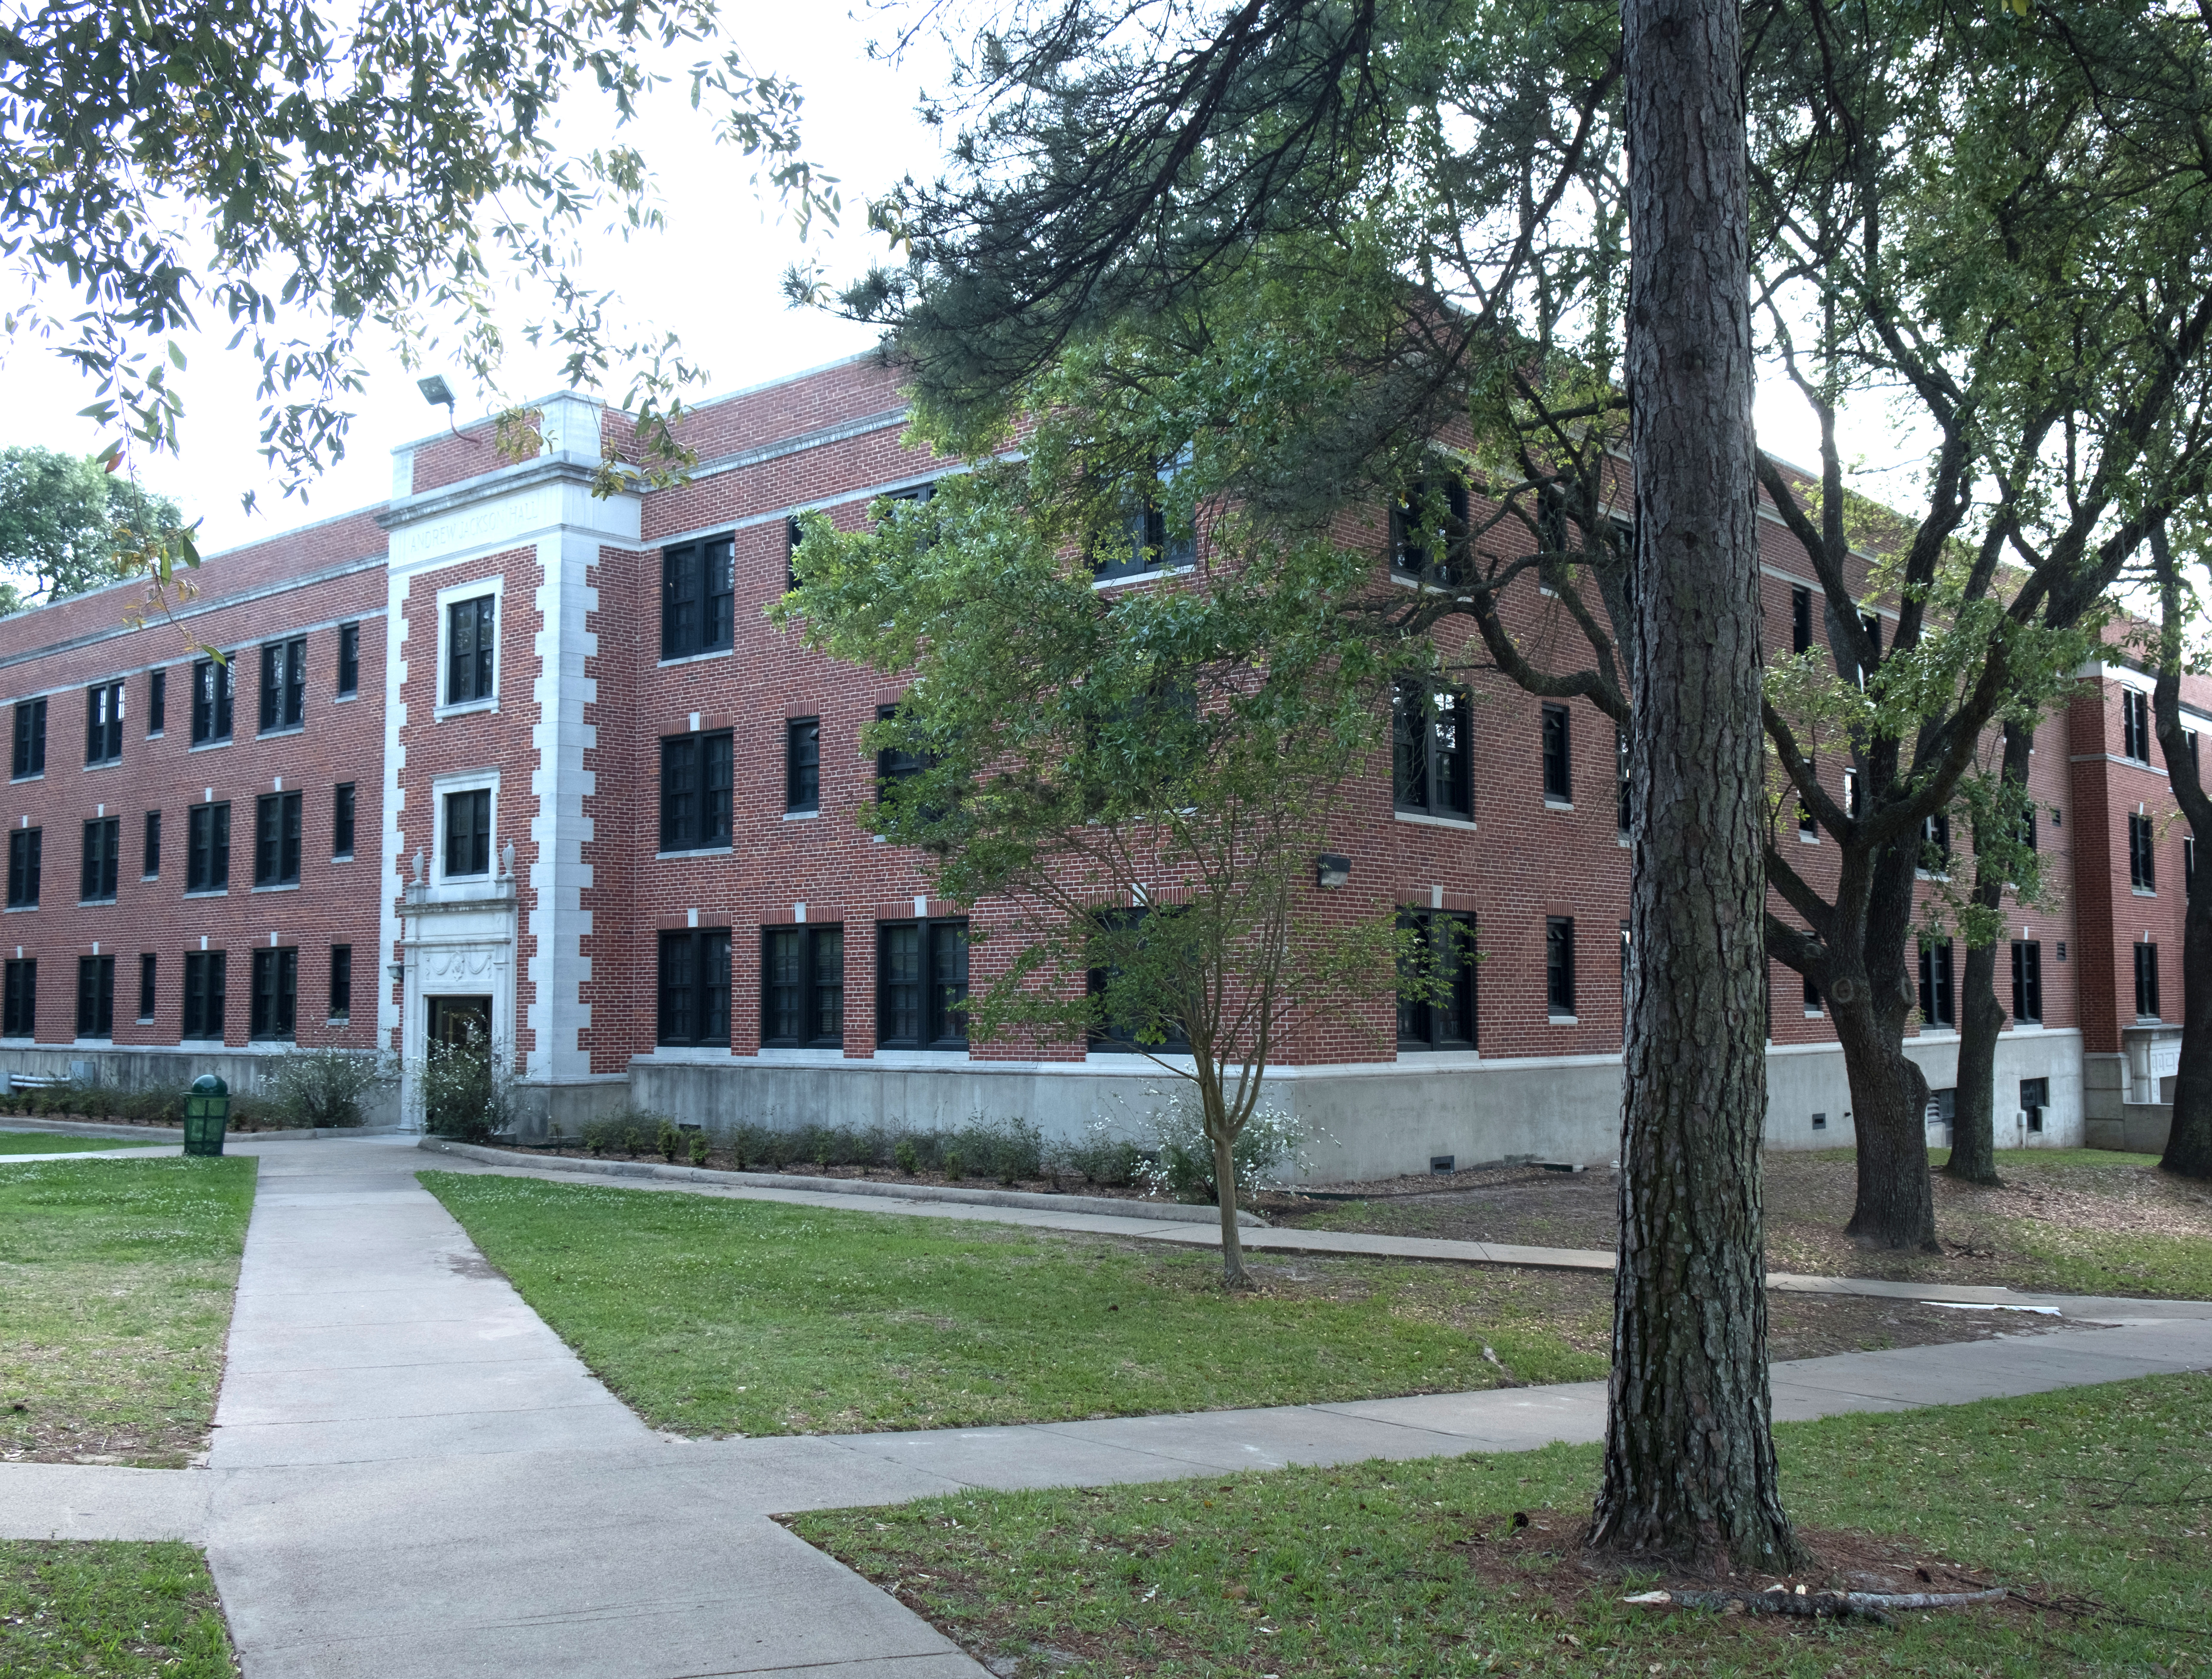 An image of a residence hall on campus.